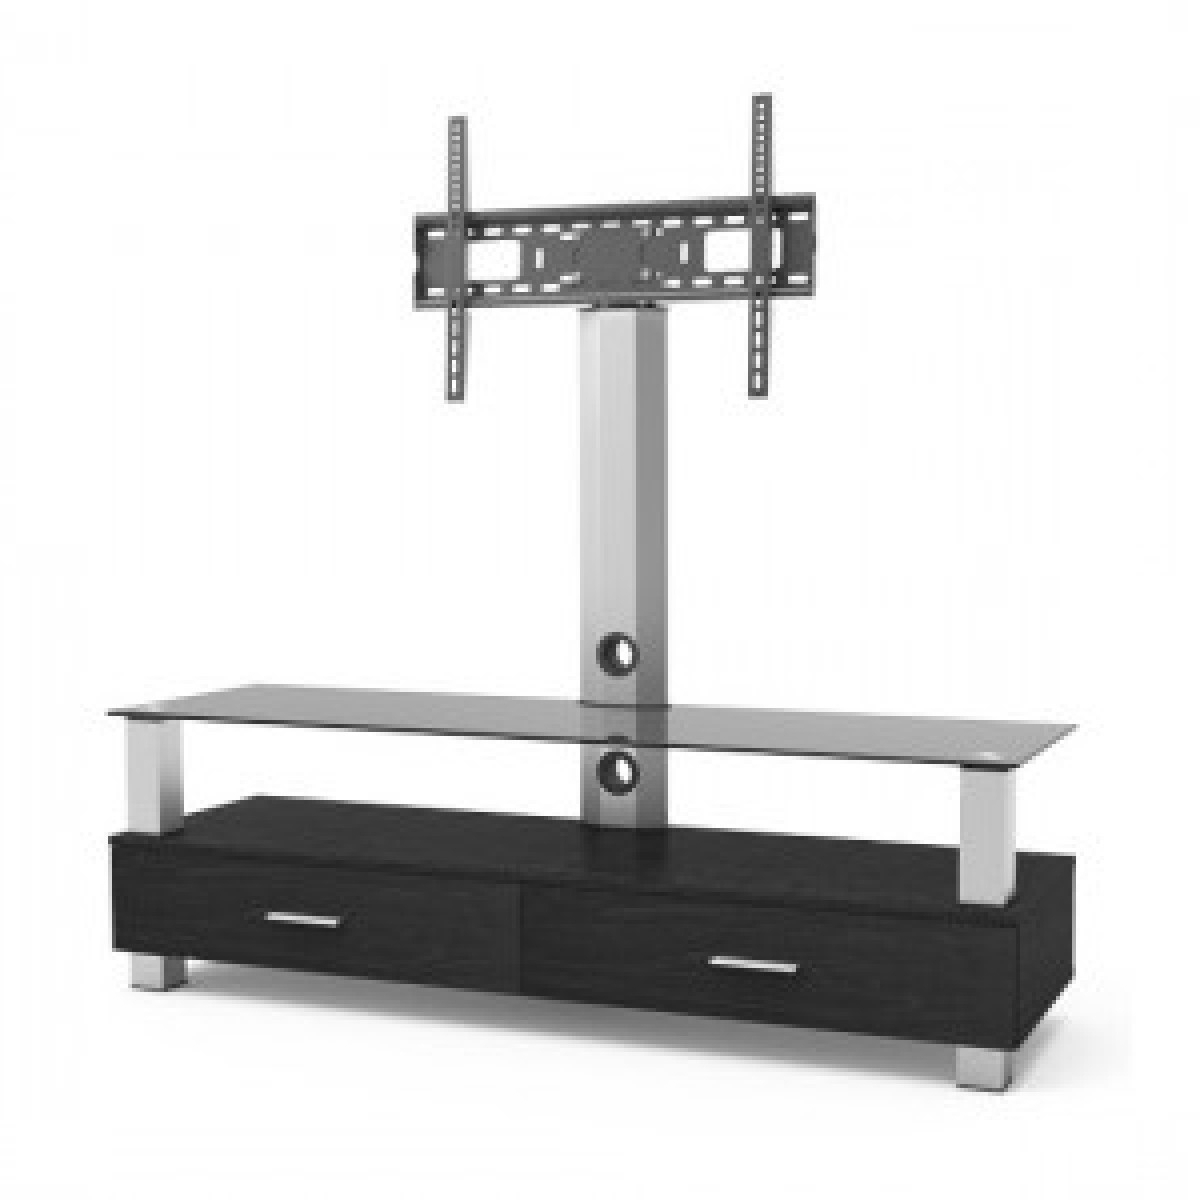 Lk 203L Wood Glass Tv Stand Swivel – Stands And Furniture Inside Trendy Swivel Black Glass Tv Stands (Gallery 9 of 20)